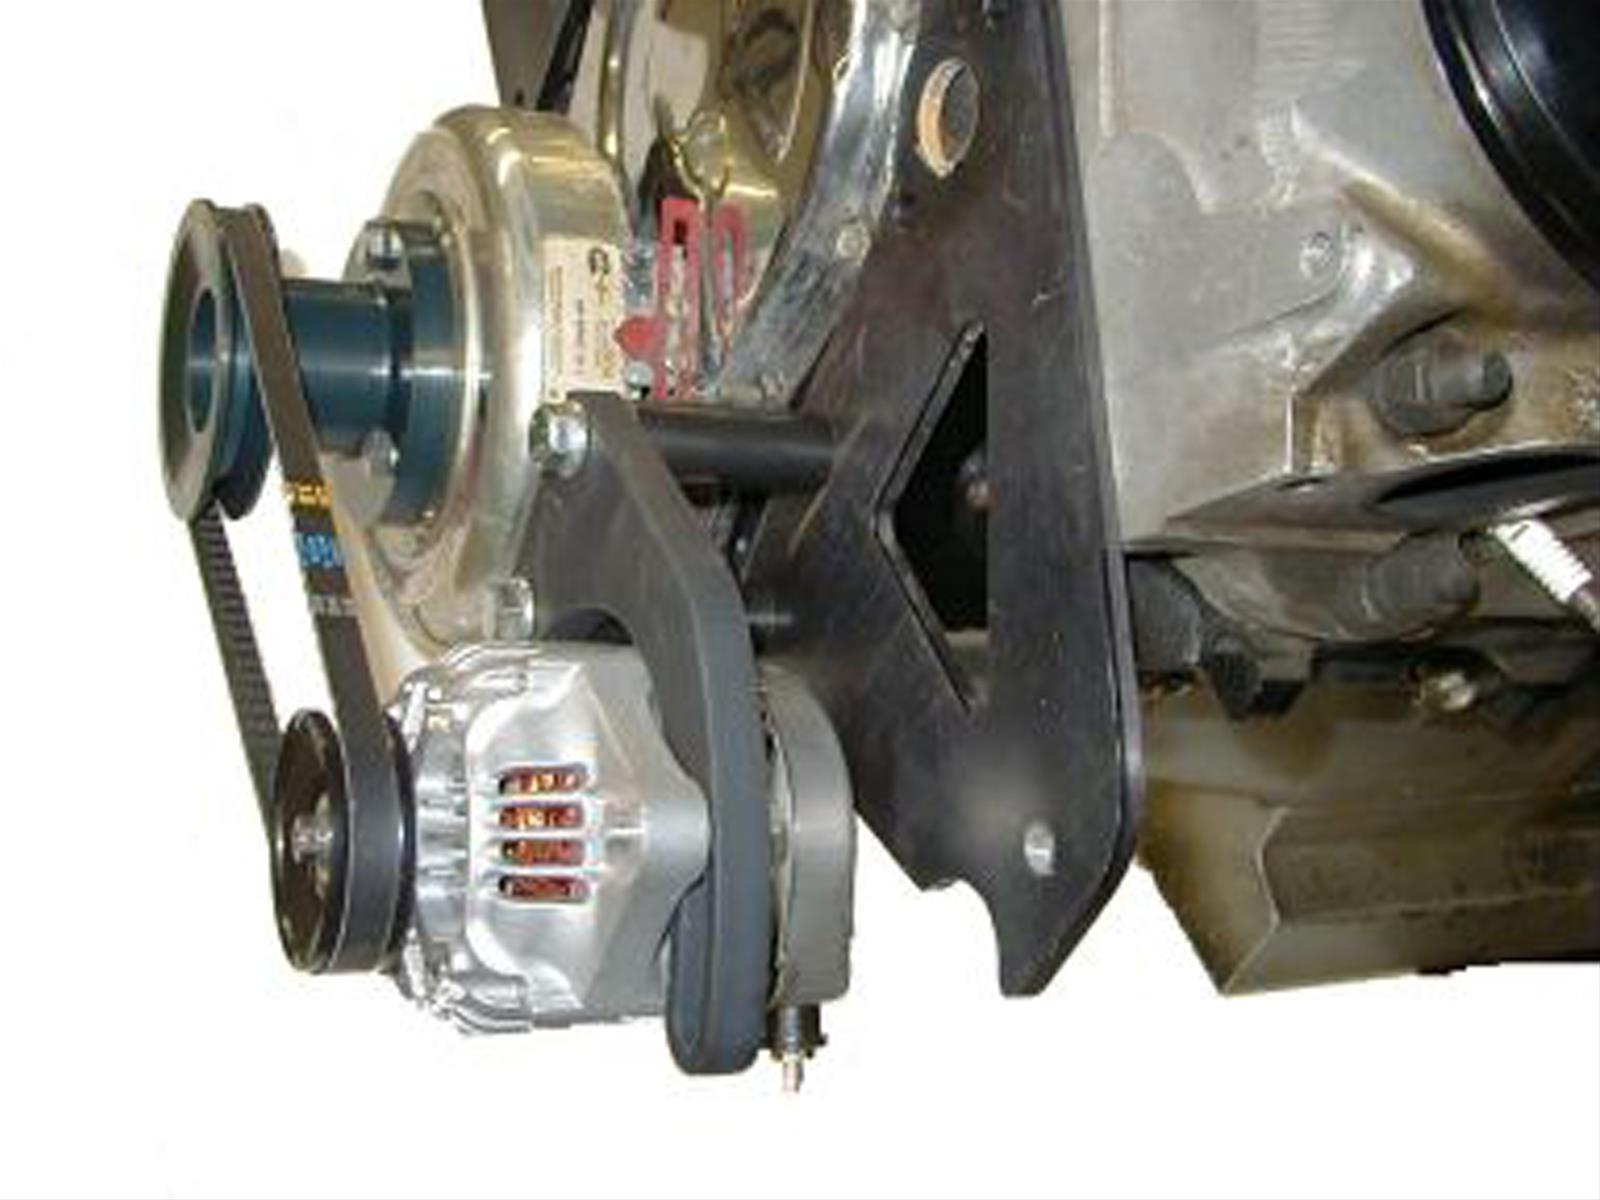 East Coast Auto Electric Super Mini Alternator Kits 2414 Free Shipping On Orders Over 99 At Summit Racing